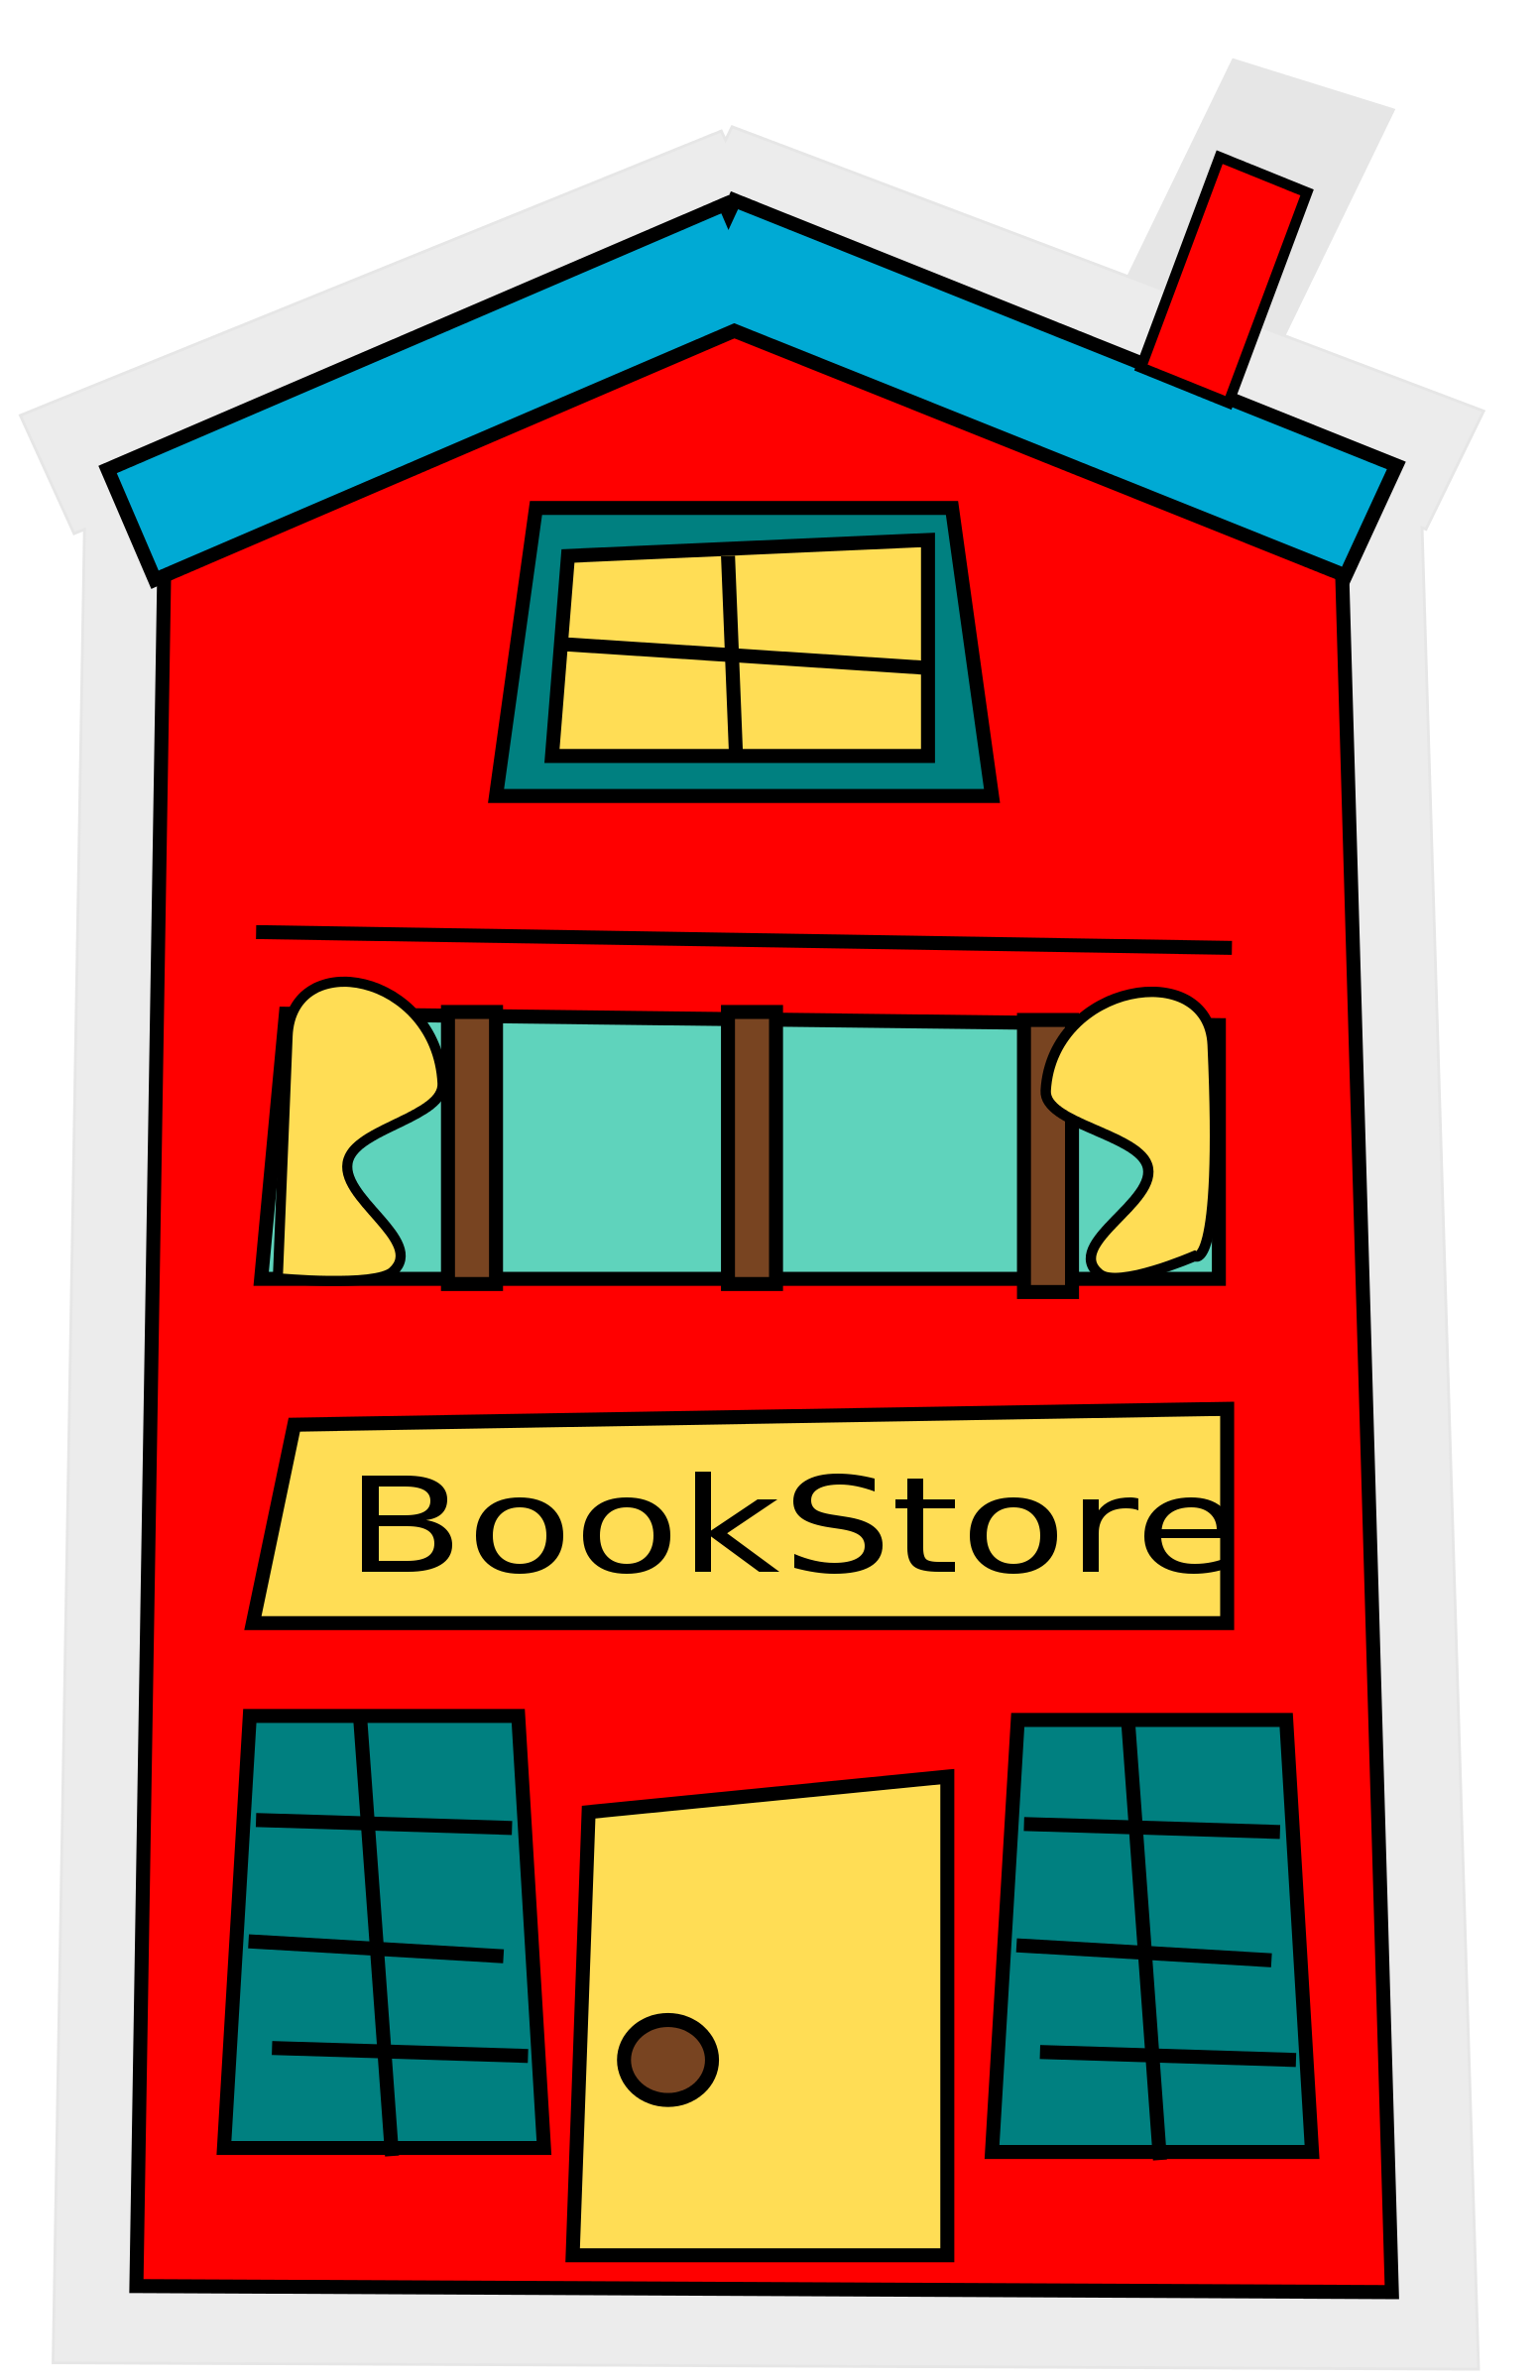 Bookstore logo clipart png royalty free library Free Bookstore Cliparts, Download Free Clip Art, Free Clip Art on ... png royalty free library